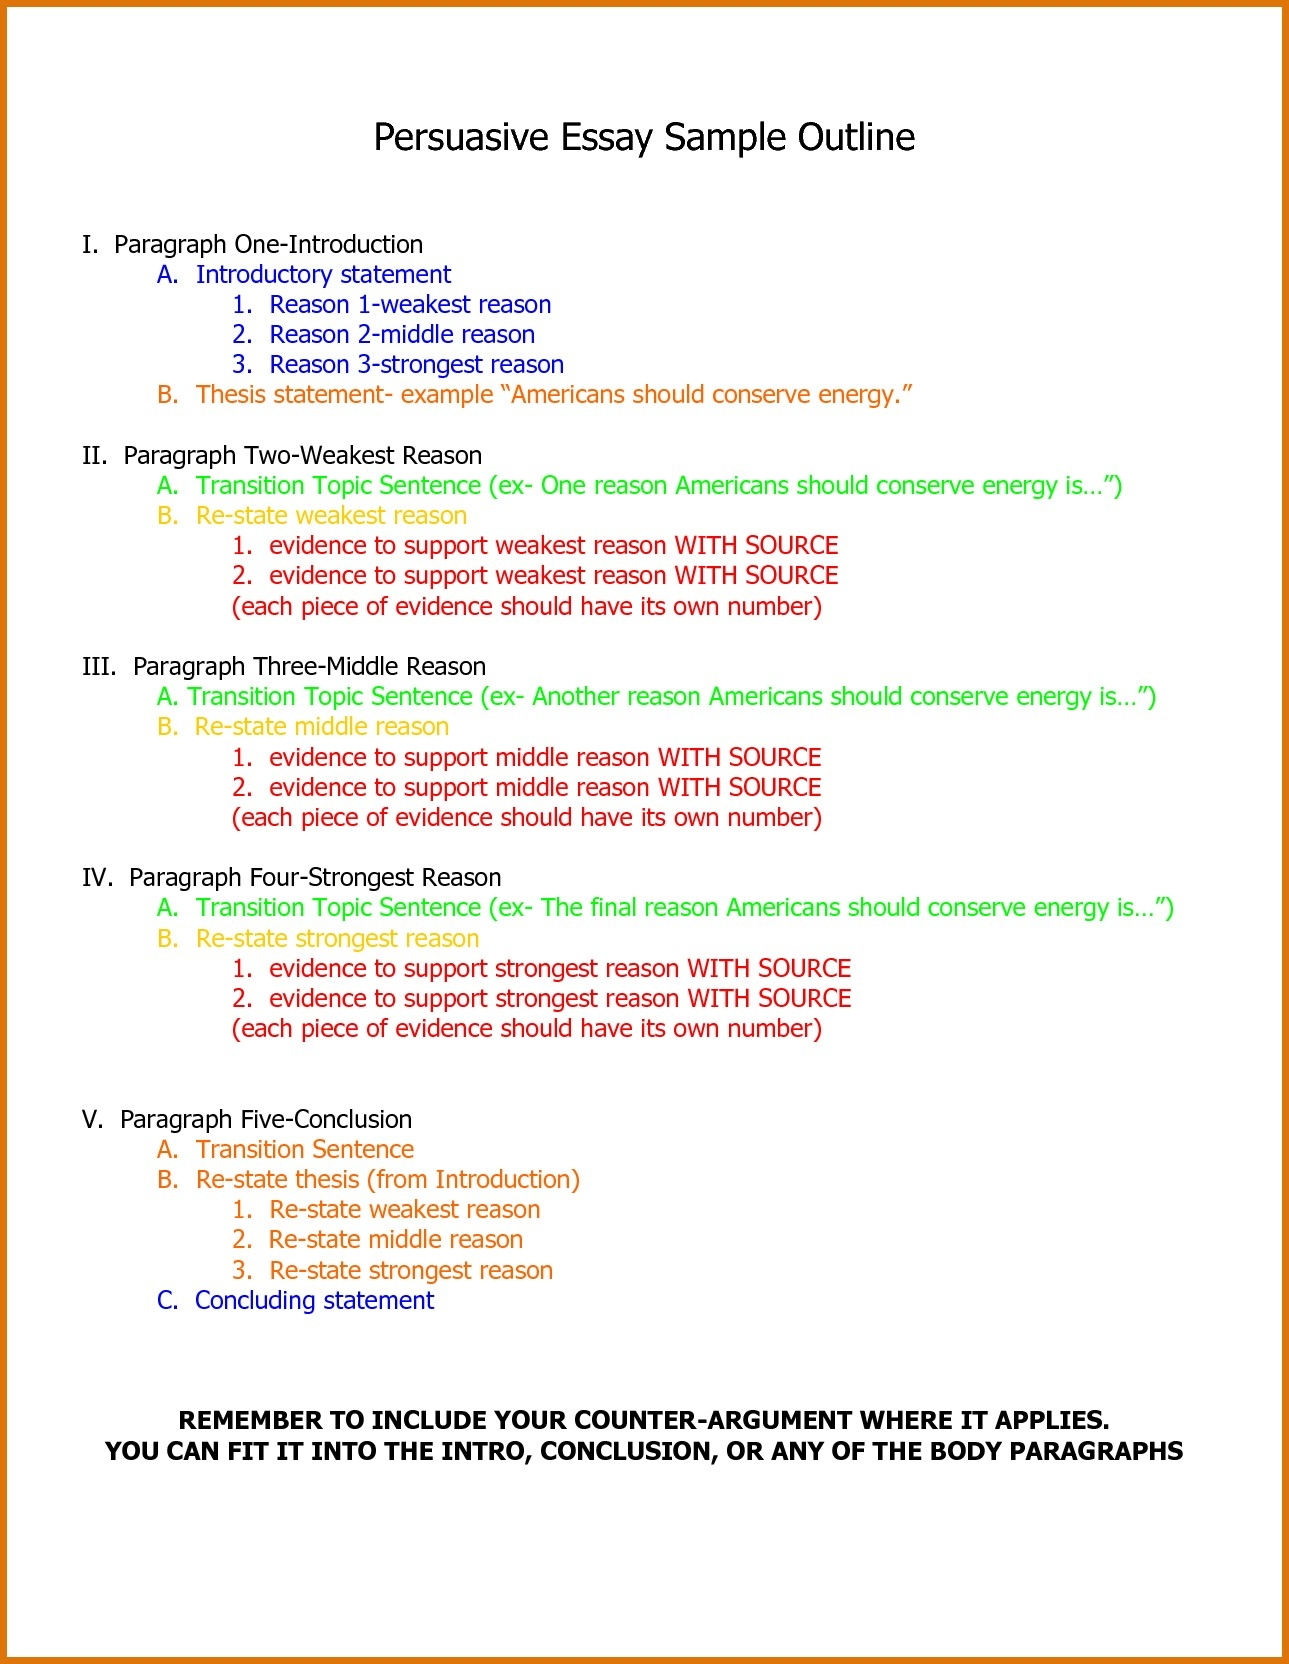 Research Papers Examples Essays  Unique Ideas For A Persuasive Essay Discursive Essay Ideas  Elegant  Argument Essay Introduction College Vs High School Essay Compare And Contrast also Secondary School English Essay  Unique Ideas For A Persuasive Essay Reflection Paper Example Essays